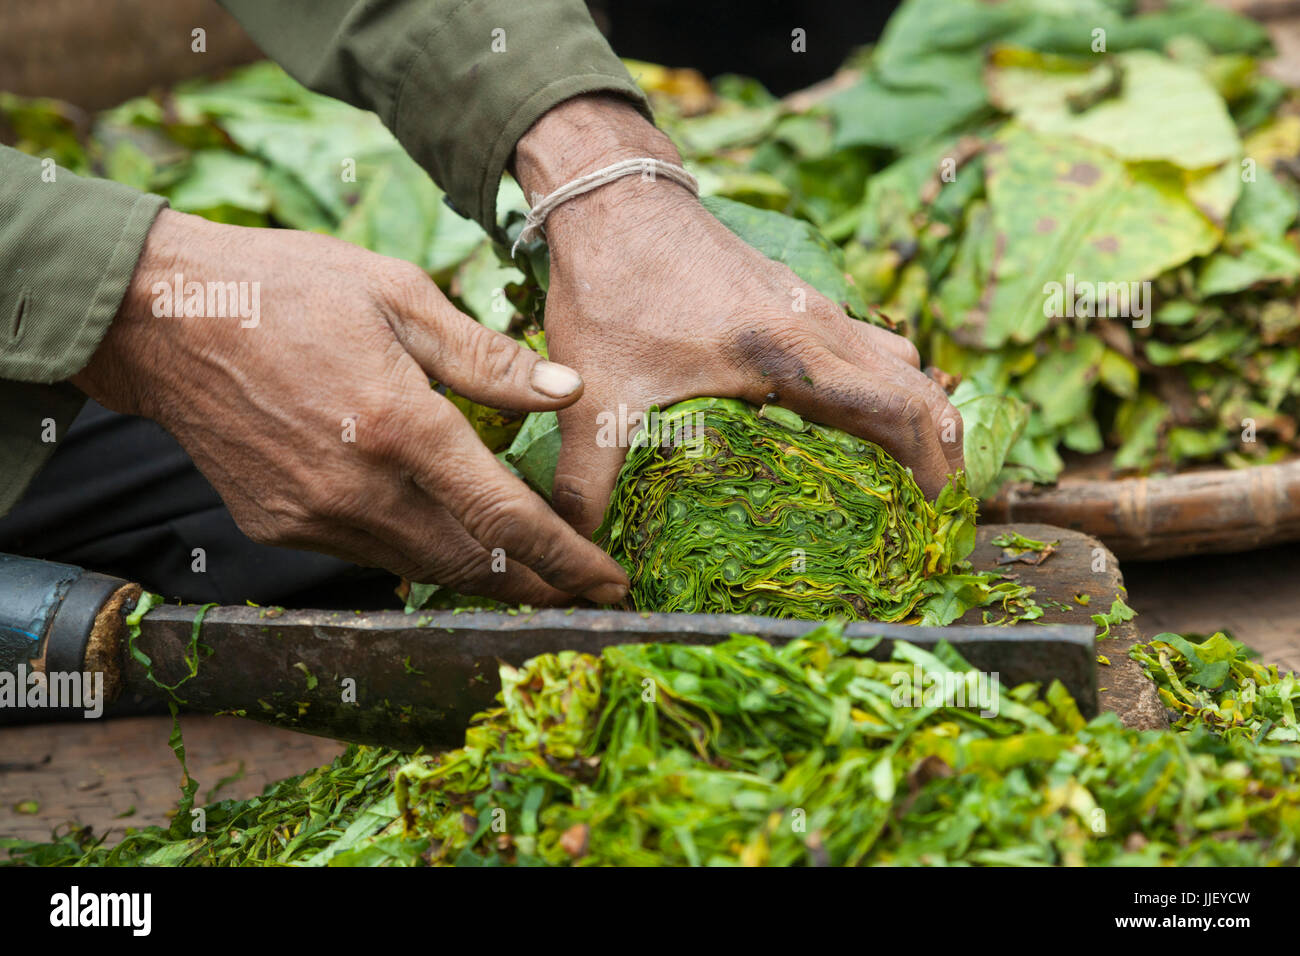 A man chops tobacco leaves into strips in Ban Phon Hom, Laos. - Stock Image